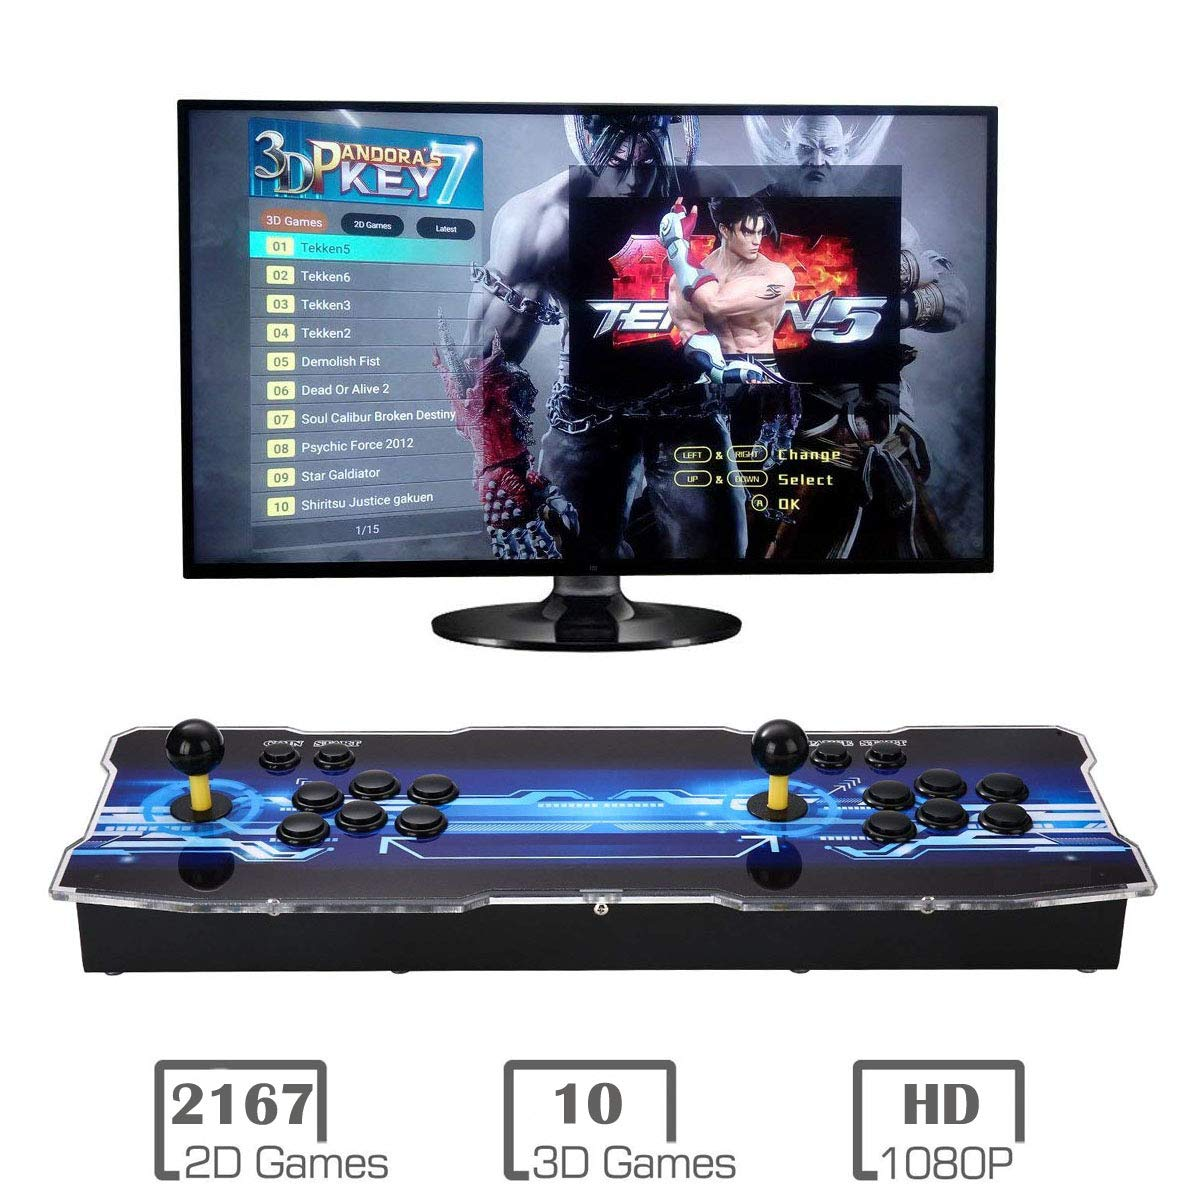 MYMIQEY 3D Pandora Key 7 Arcade Game Console | 2177 Retro HD Games | Full HD (1920x1080) Video | 2 Player Game Controls | Support Multiplayer Online | Add More Games | HDMI/VGA/USB/AUX Audio Output by MYMIQEY (Image #1)